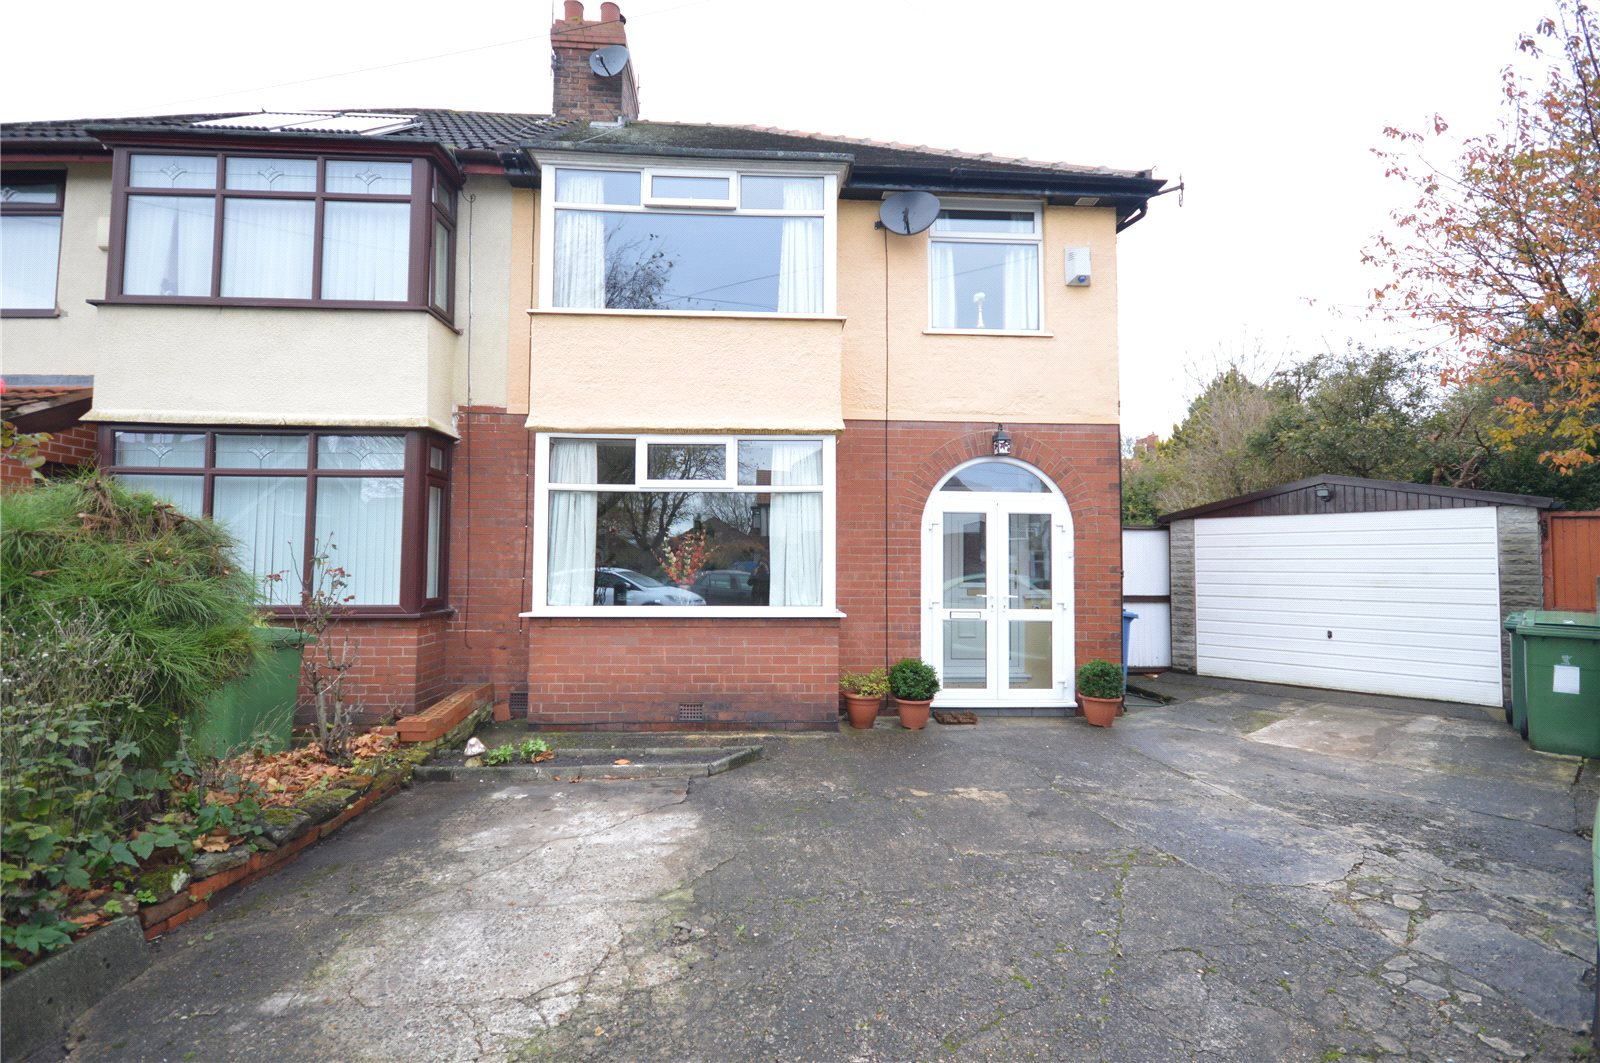 3 Bedrooms Semi Detached House for sale in Bowfield Road, Grassendale, Liverpool, L19